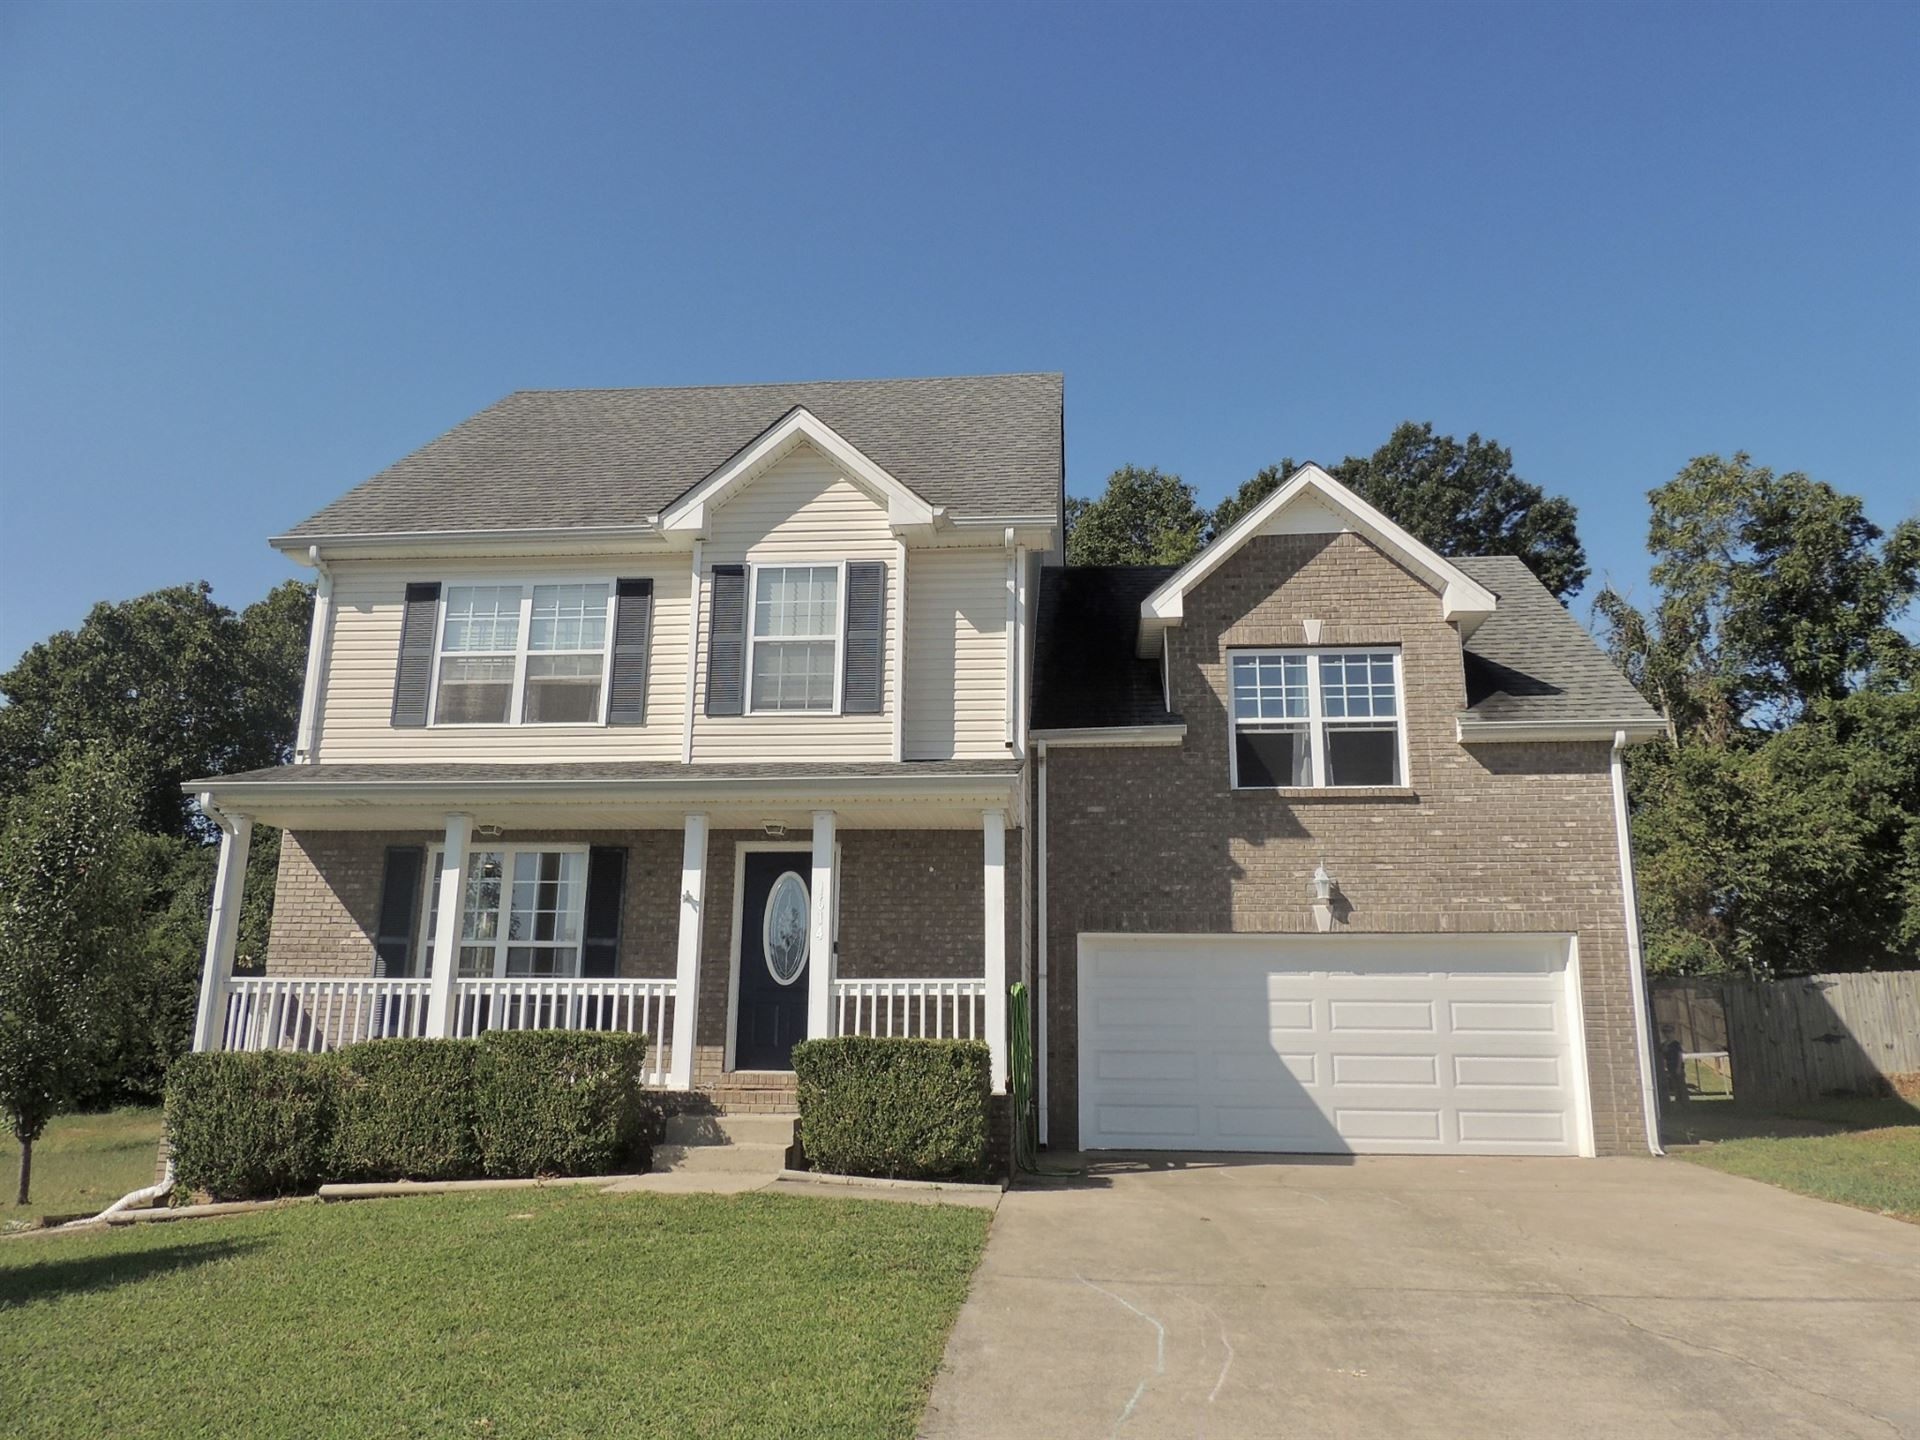 1614 Autumn Dr, Clarksville, TN 37042 - MLS#: 2191324